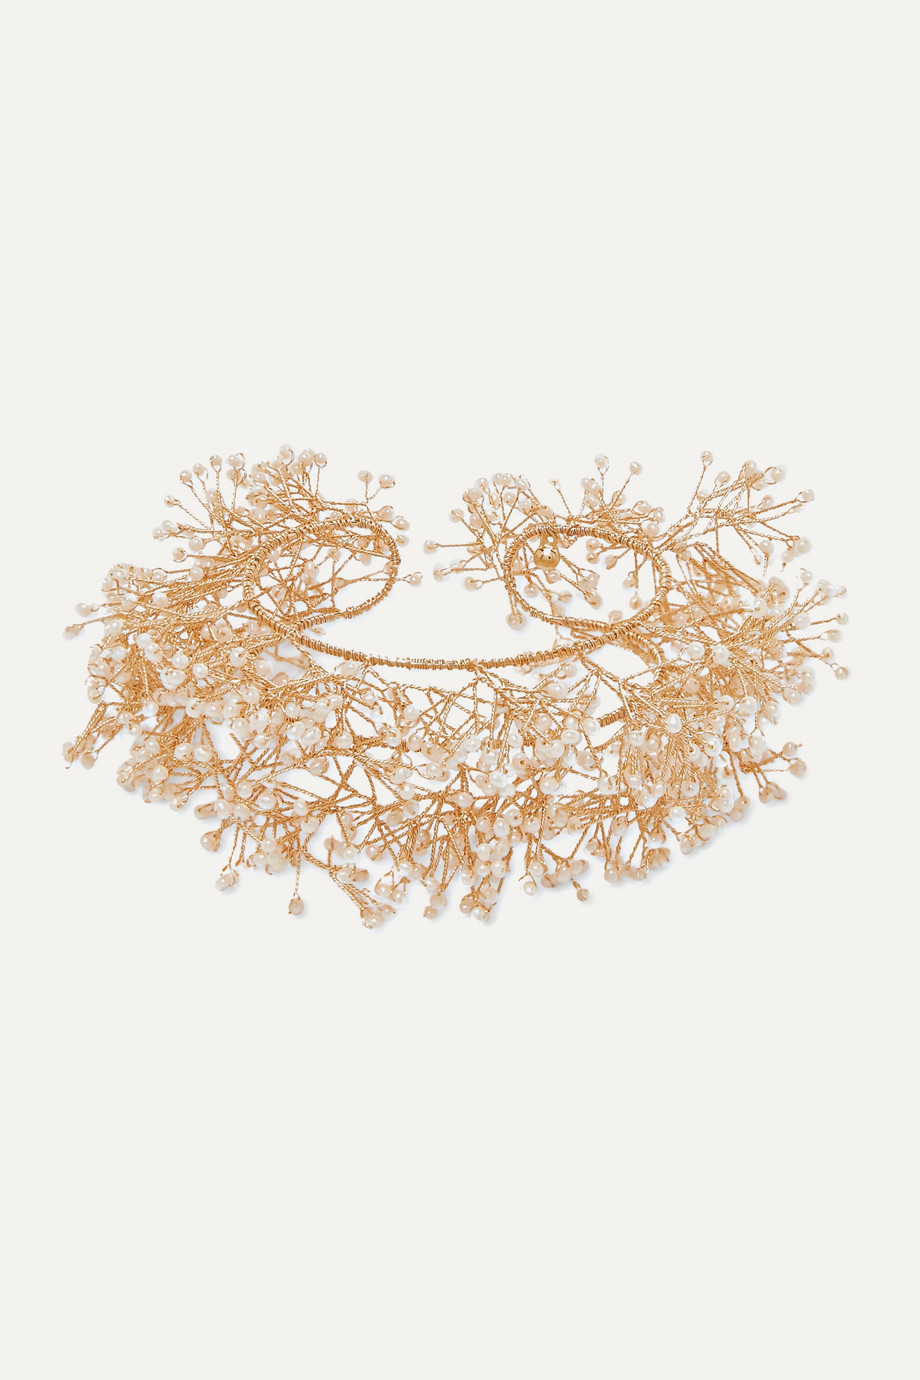 14 / Quatorze Baby's breath gold-plated pearl cuff